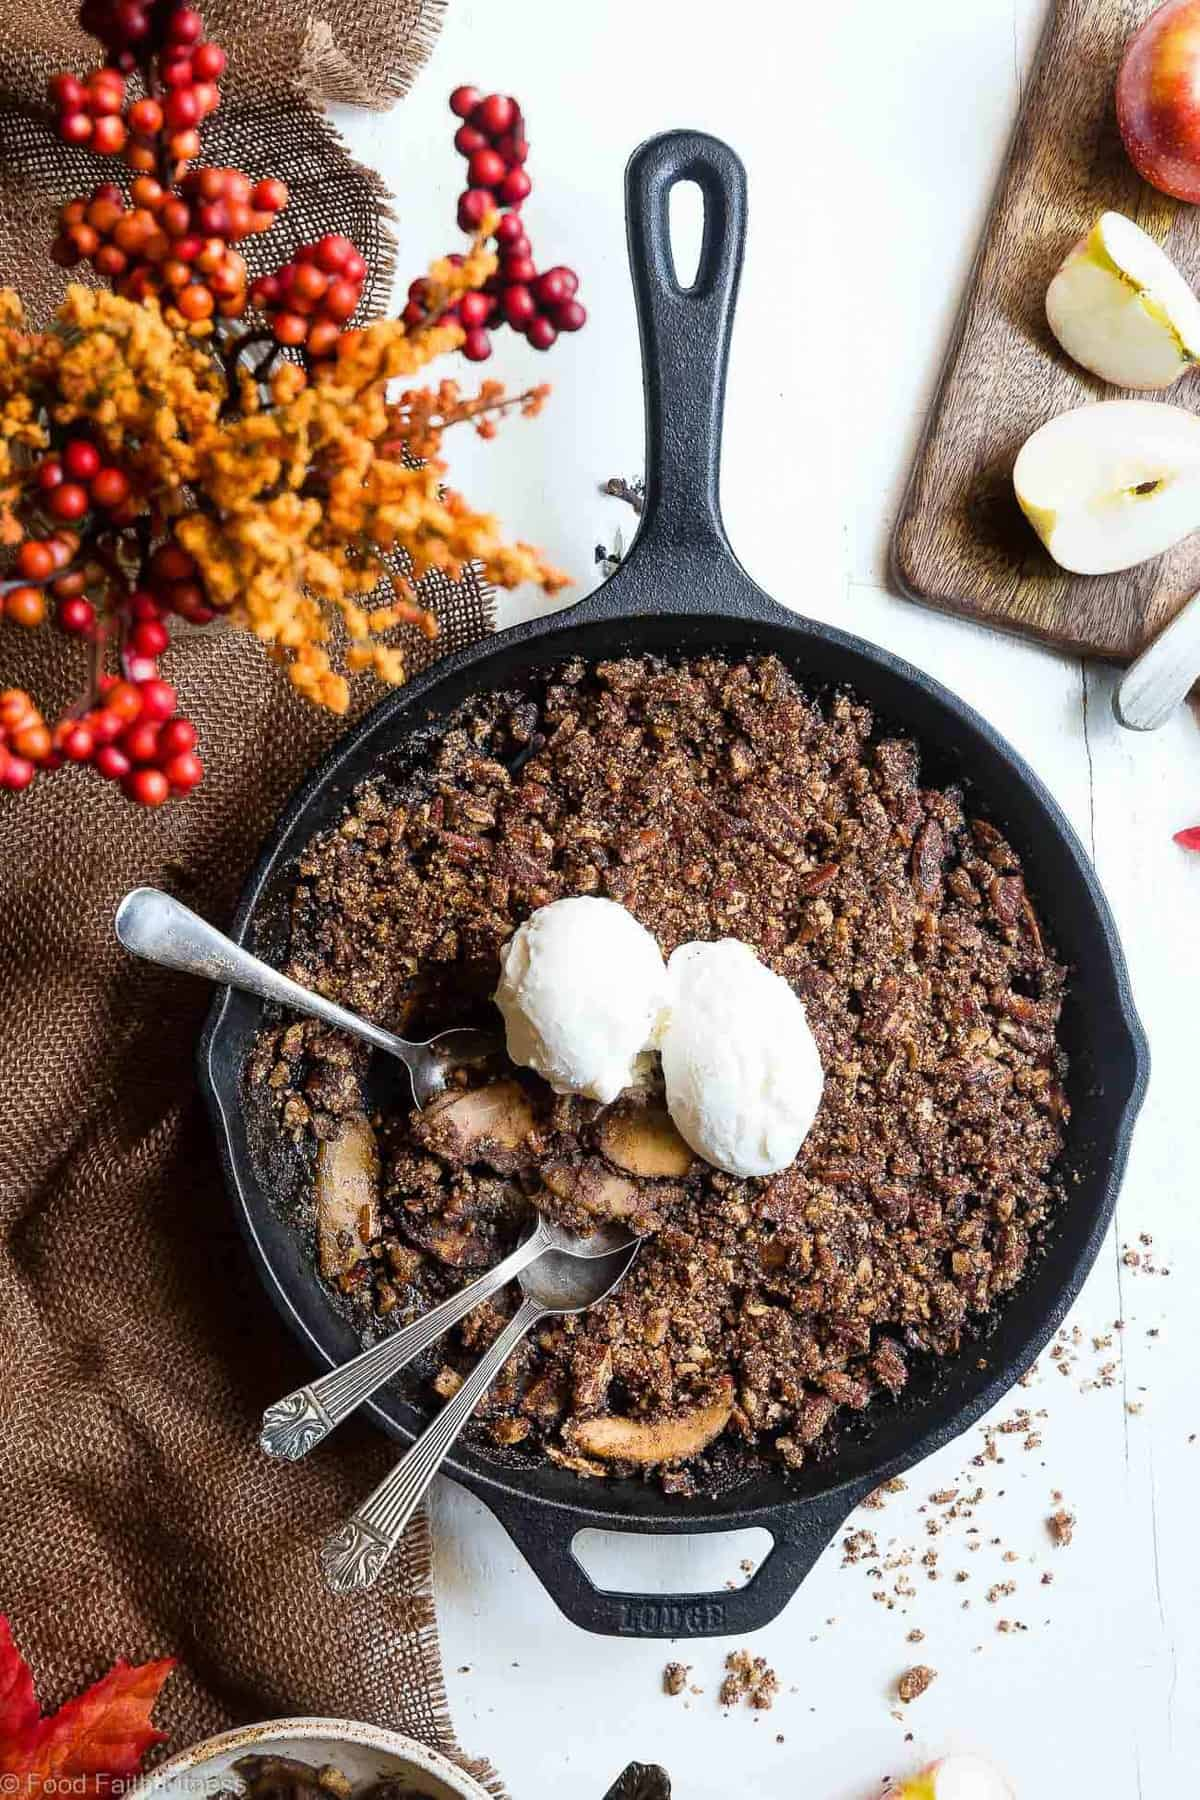 The BEST Paleo Vegan Apple Crisp with Coconut Flour - This almond flour apple crisp is an EASY, cozy fall dessert made with simple, wholesome ingredients! Perfectly crispy, and spicy-sweet that you won't believe it's gluten free, dairy free and better for you! | #Foodfaithfitness | #Vegan #Paleo #Healthy #Glutenfree #Dairyfree